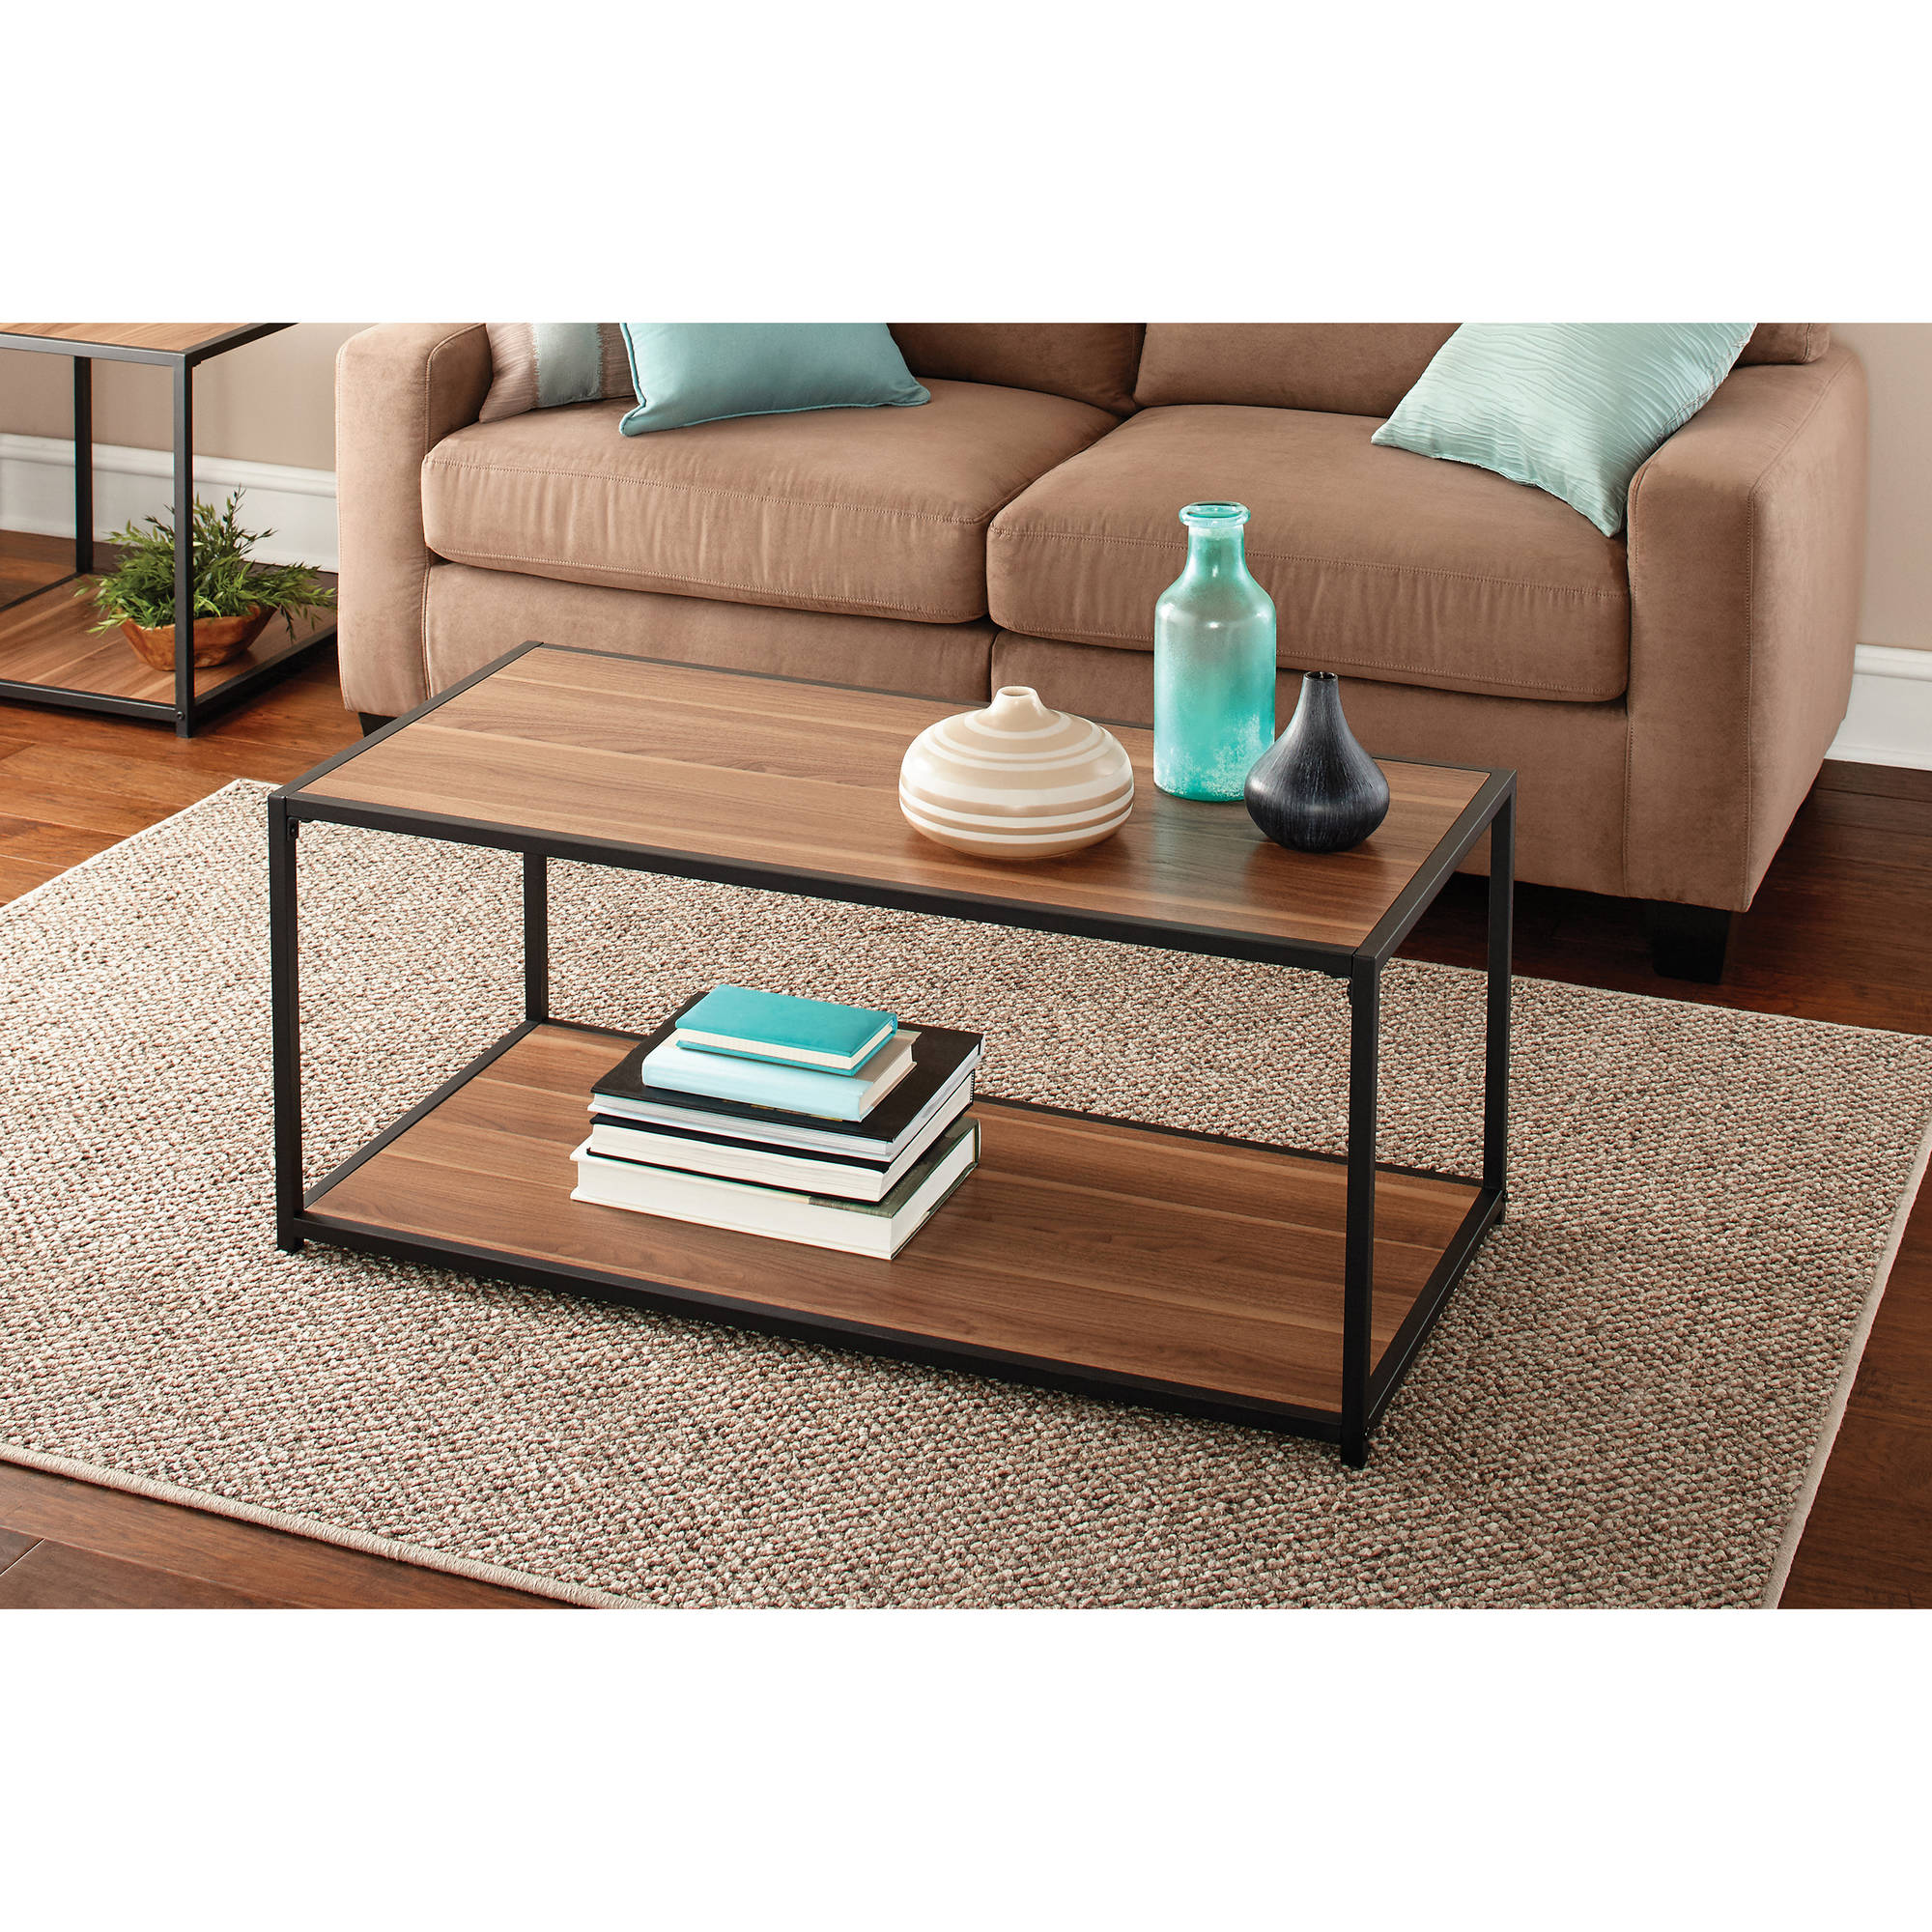 mainstays metro coffee table multiple finishes end tables set black quebec furniture manufacturers inch high west elm parsons buffet brown sofa grey carpet ashley bailey white